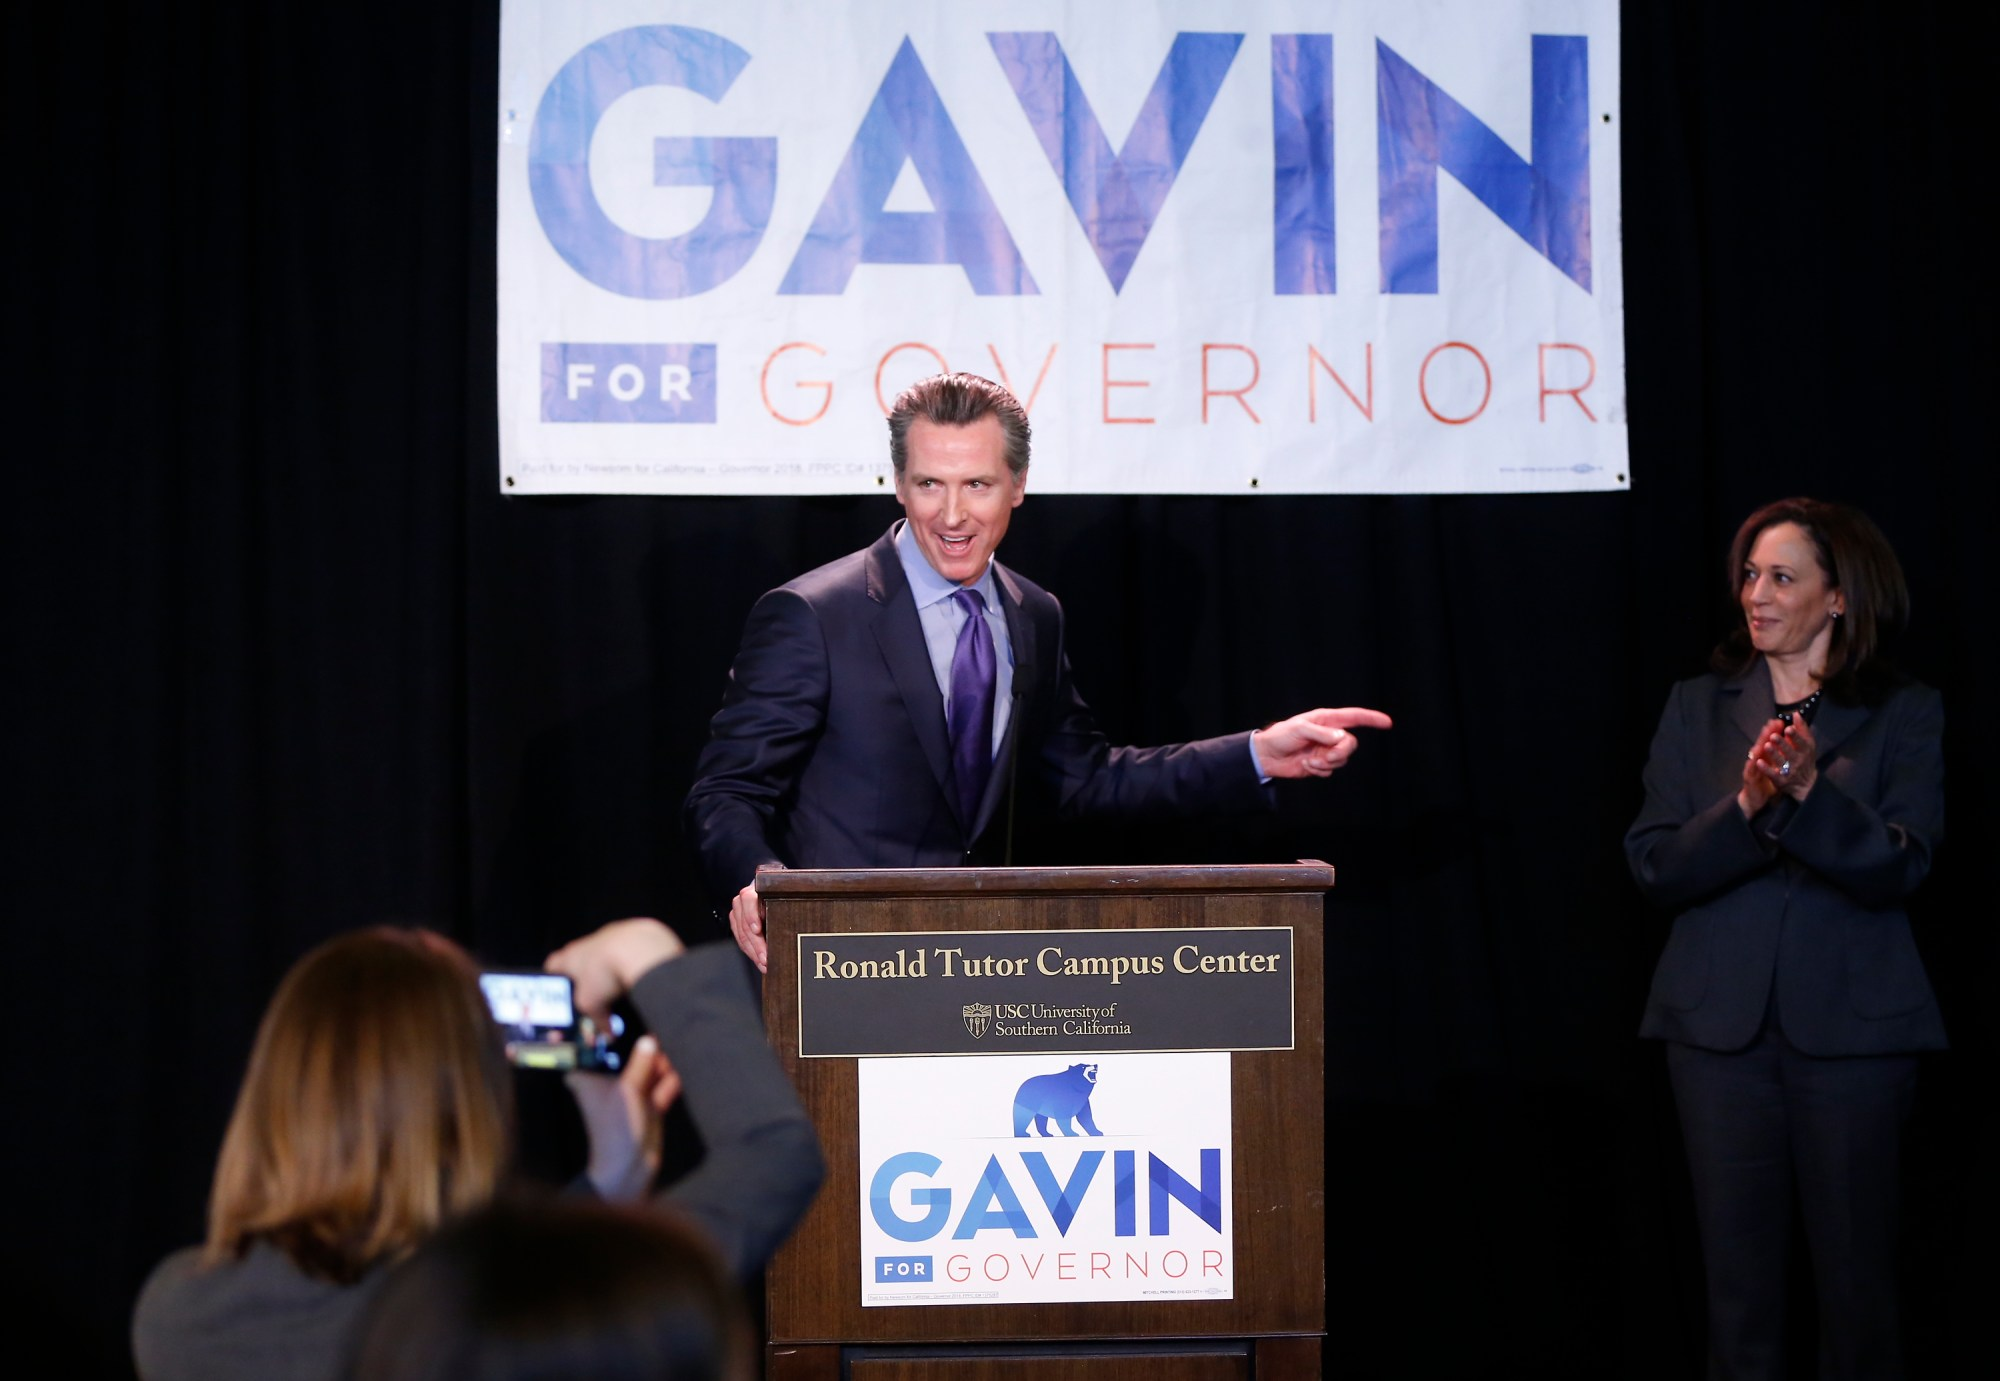 Sen. Kamala Harris, right, endorses California Lt. Gov. Gavin Newsom, left, for the 2018 California Governor's race at the Ronald Tutor Campus Center at the University of Southern California on Feb. 16, 2018. (Damian Dovarganes/Associated Press)